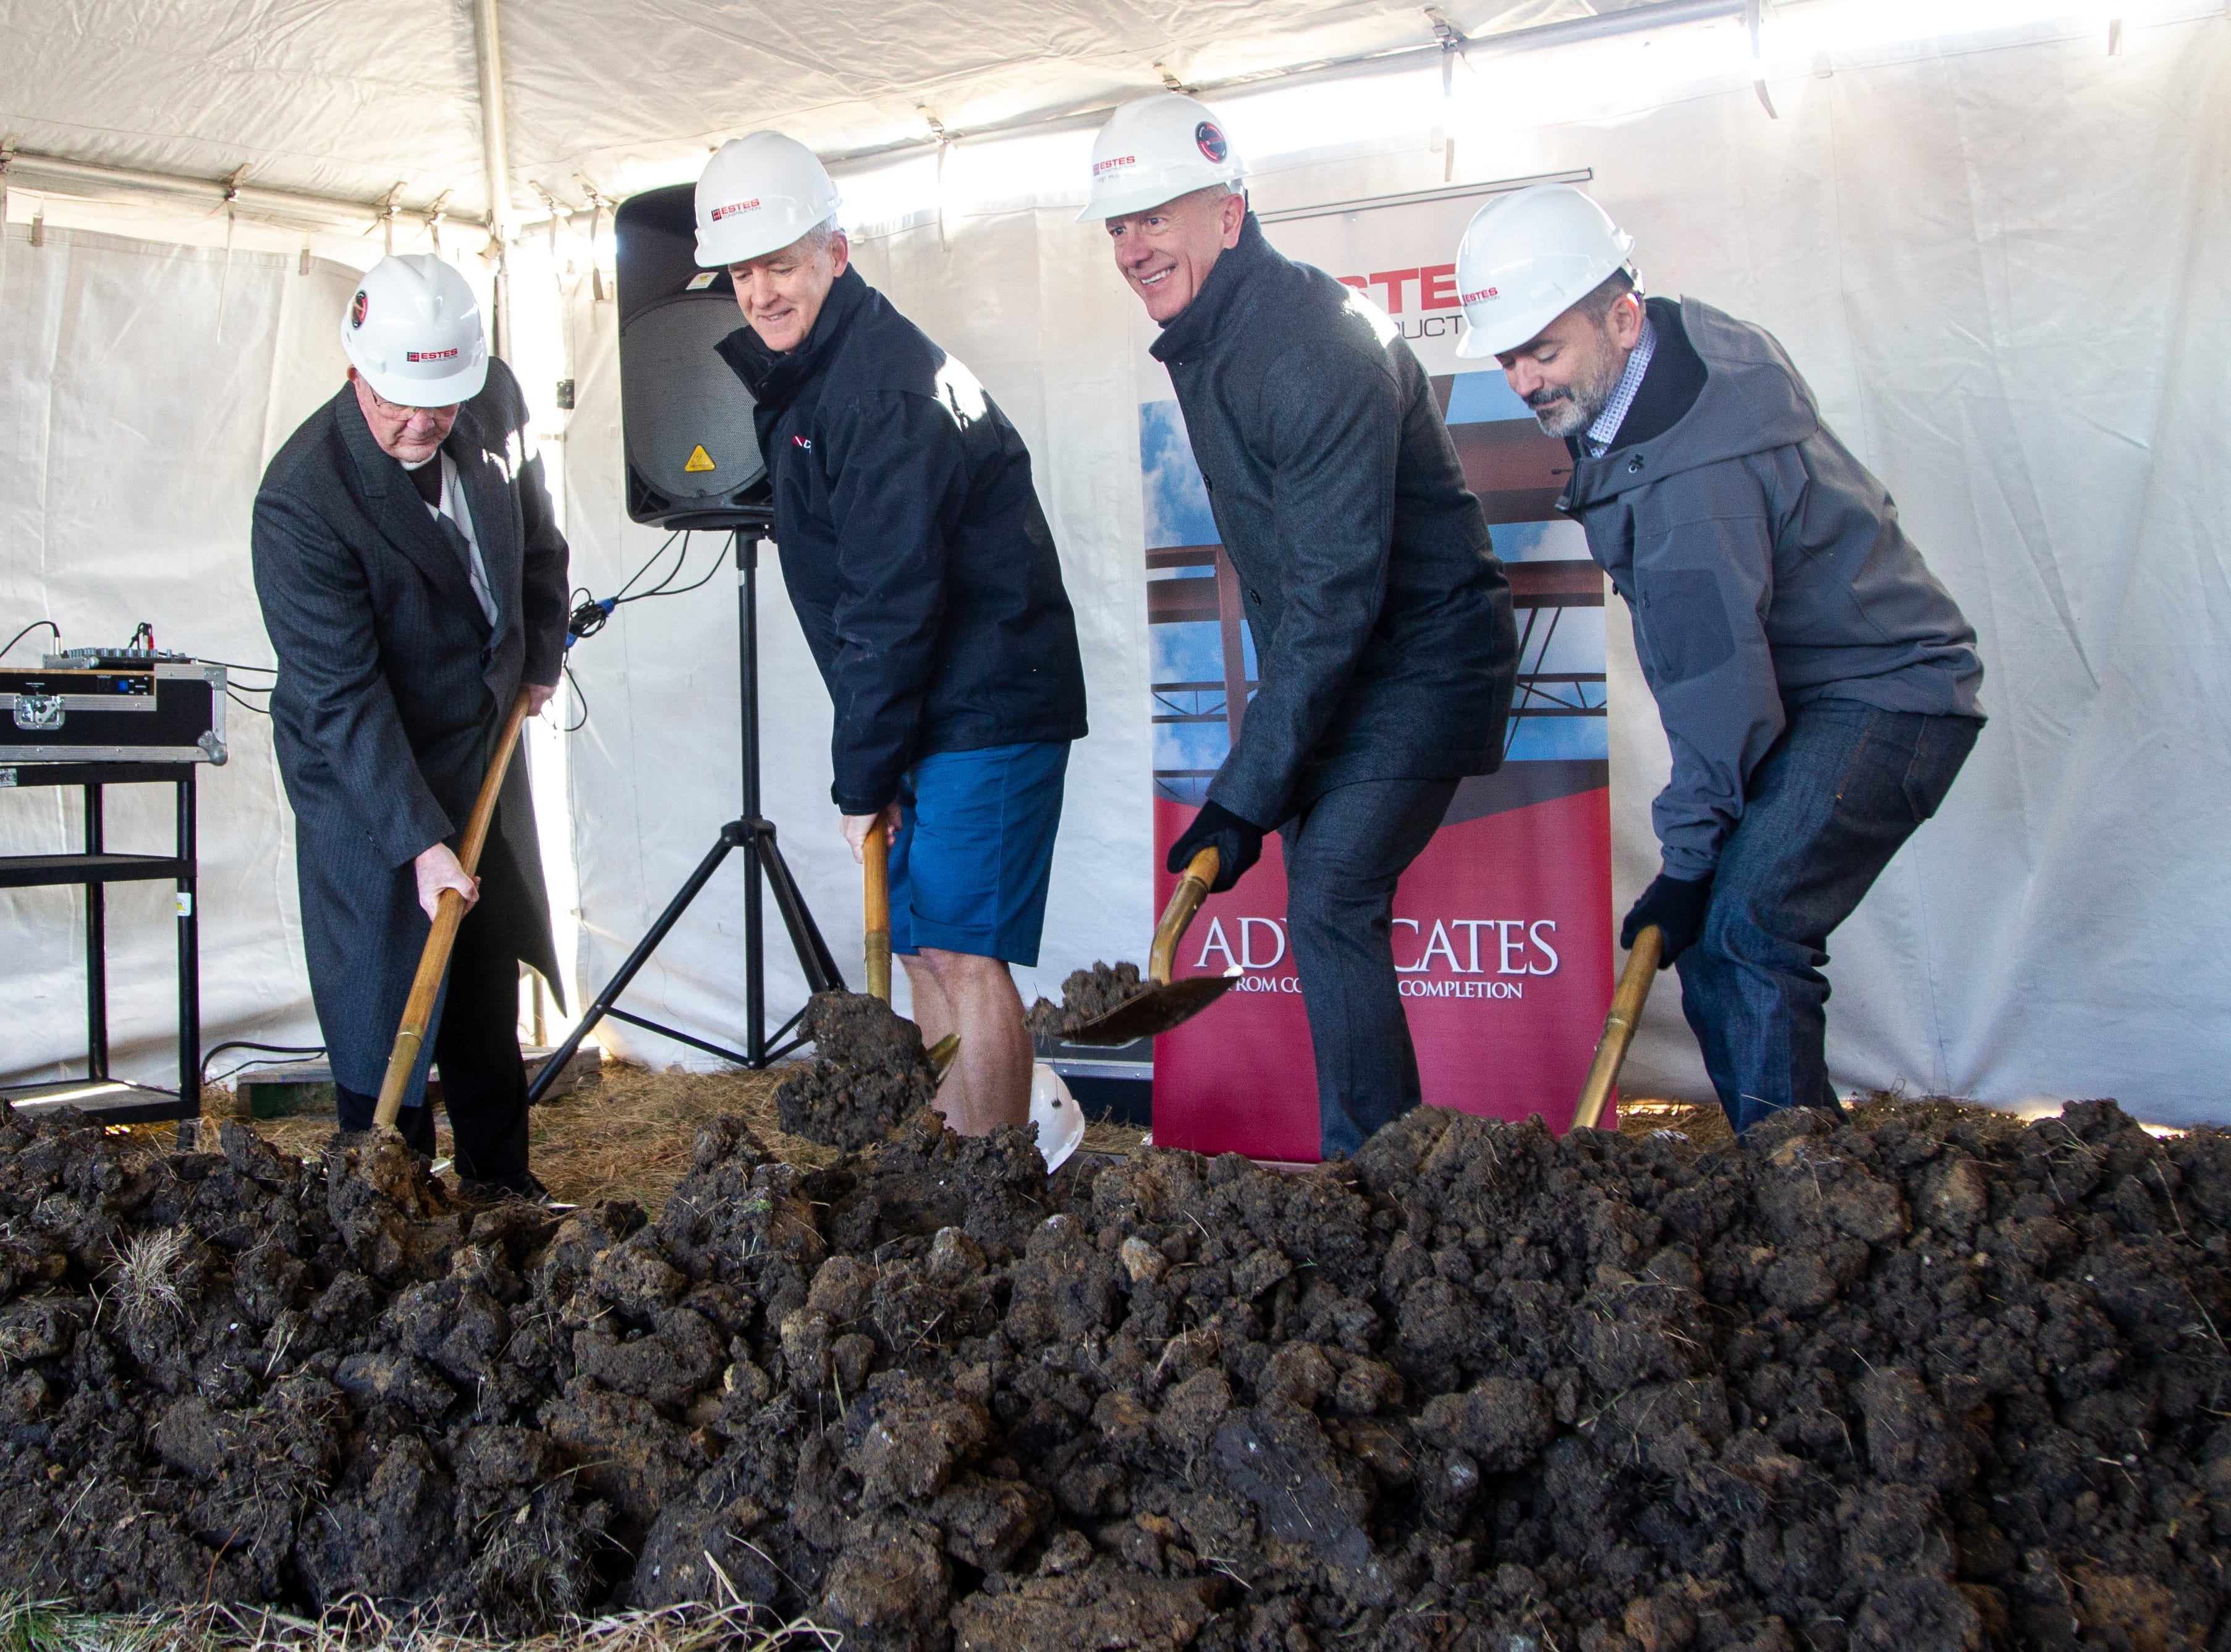 North Liberty Mayor Terry Donahue, from left, Diventures founder Dean Hollis, Estes Construction contractor Kent Pilcher, and H Design Group architect Rob Haik lift gold painted shovels of dirt during a groundbreaking event for a new Diventures store location on Thursday, Jan. 3, 2019, at the 1895 West Penn Street in North Liberty, Iowa.